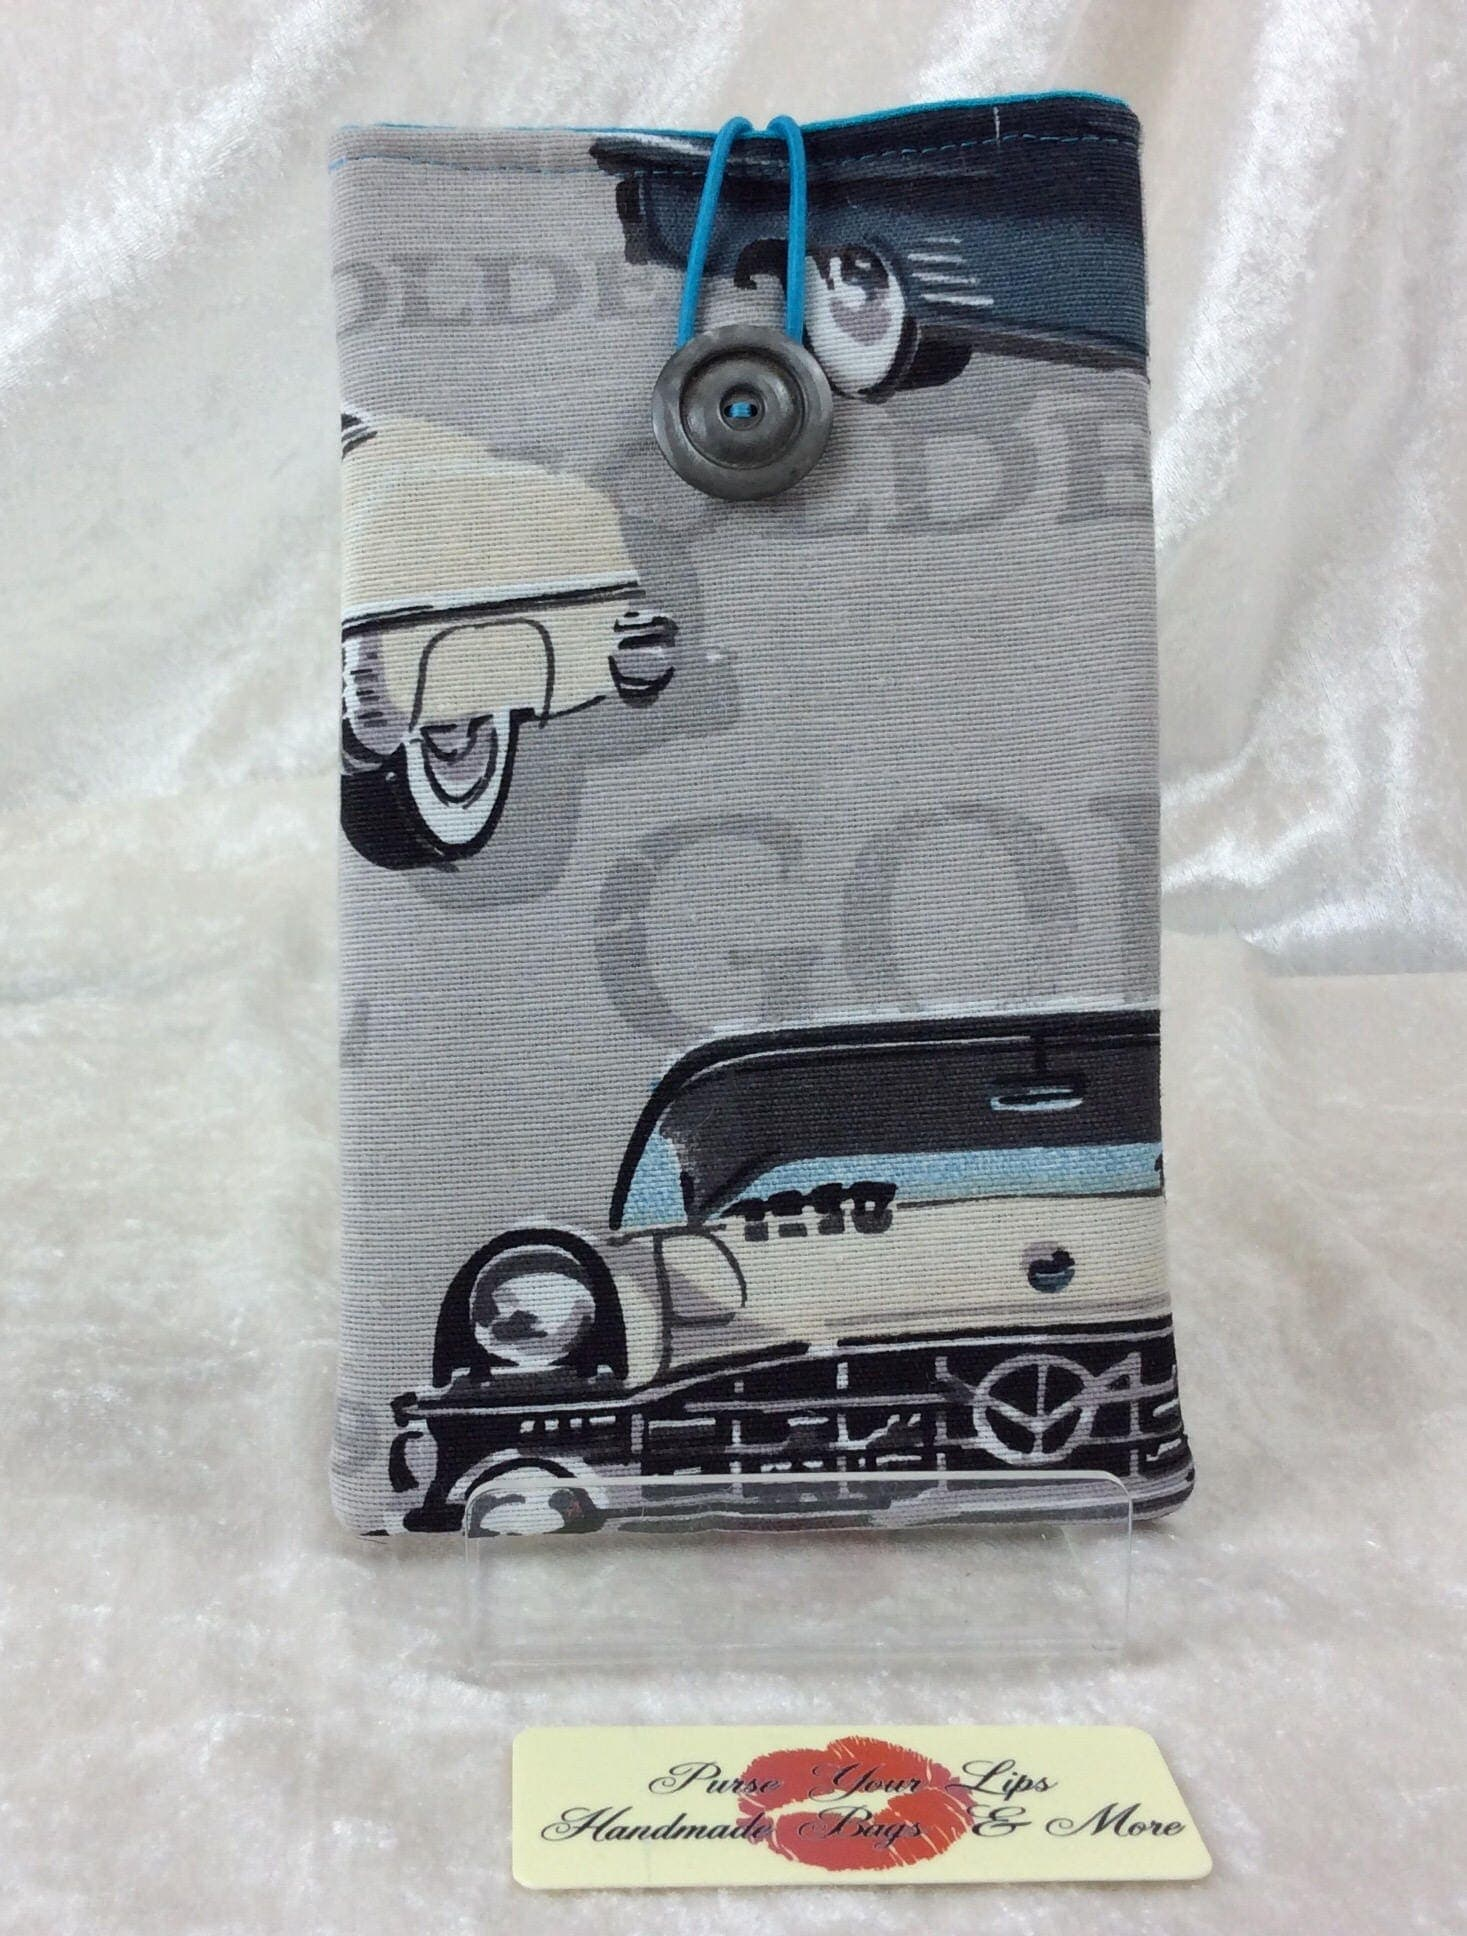 50s American Cars Large Phone Glasses Case fabric elastic button Handmade in England